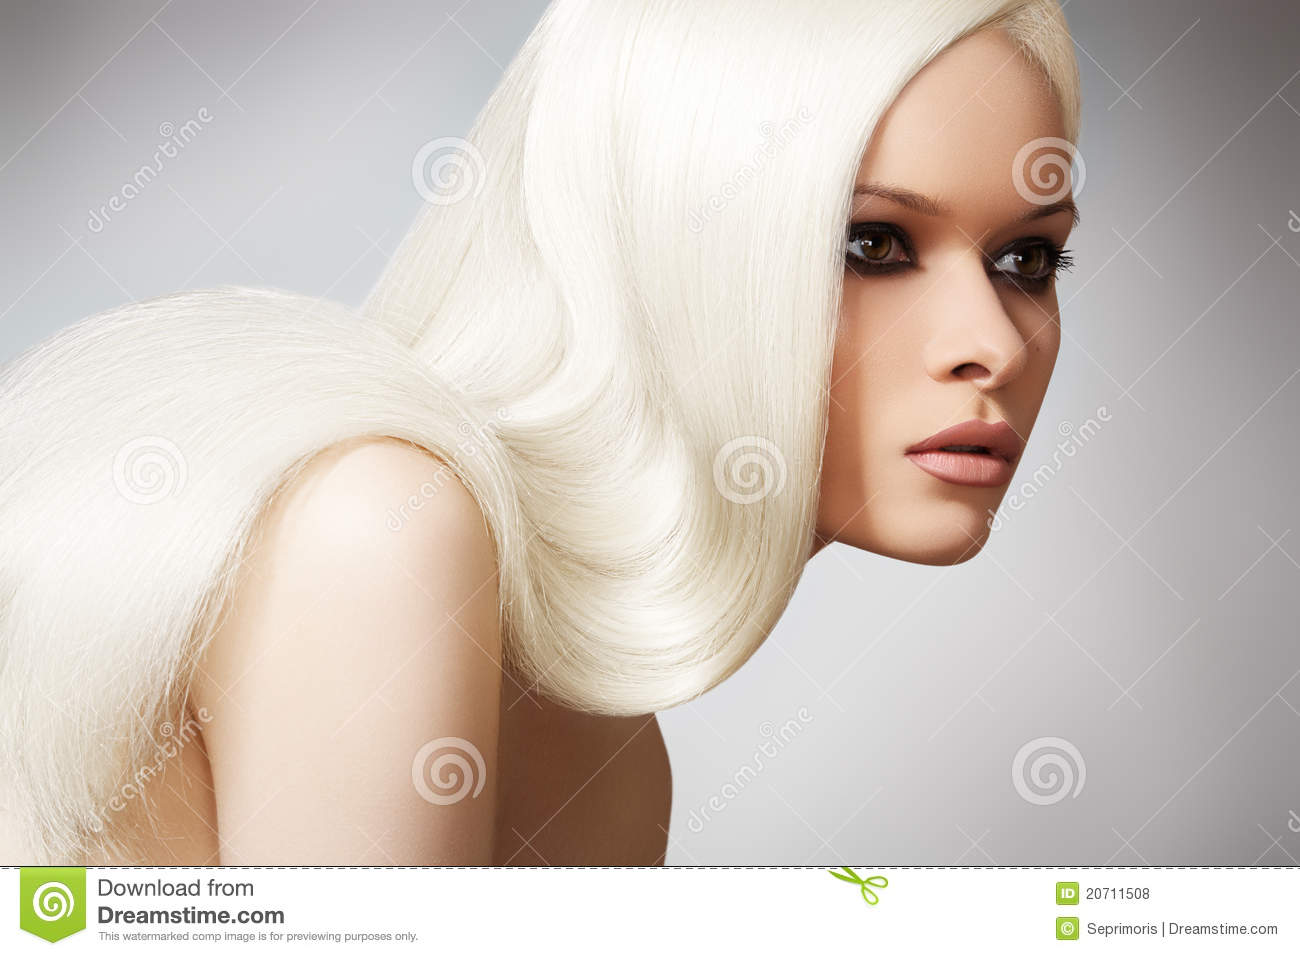 Beautiful chic model with long blond straight hair